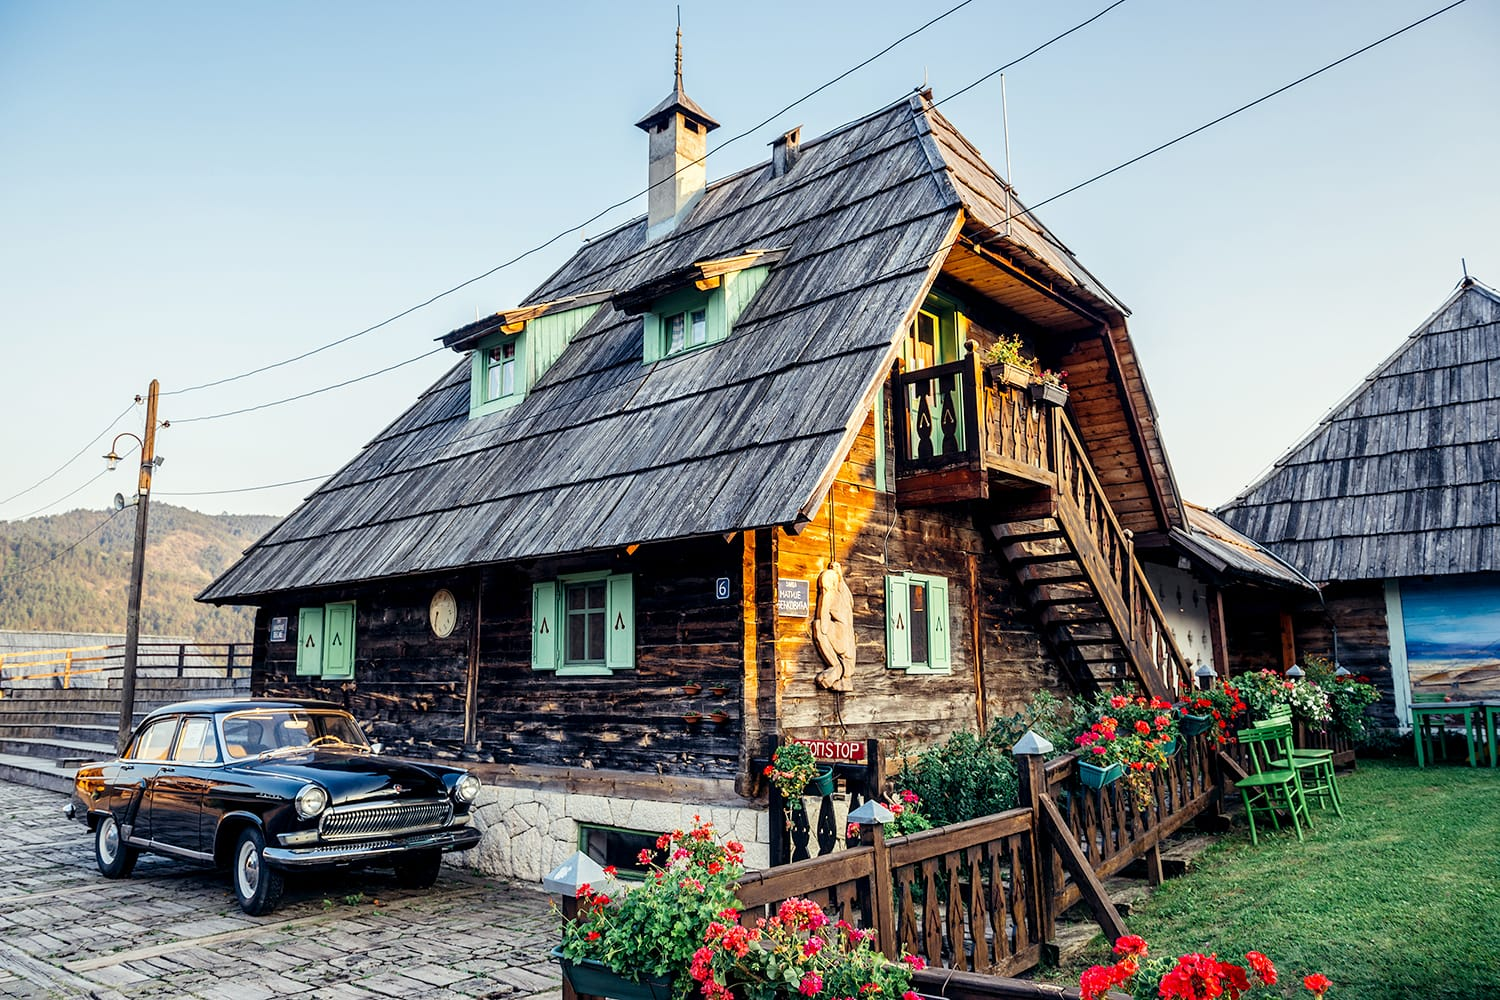 Old Volga car in front of wooden house of Drvengrad village built by Emir Kusturica in Serbia